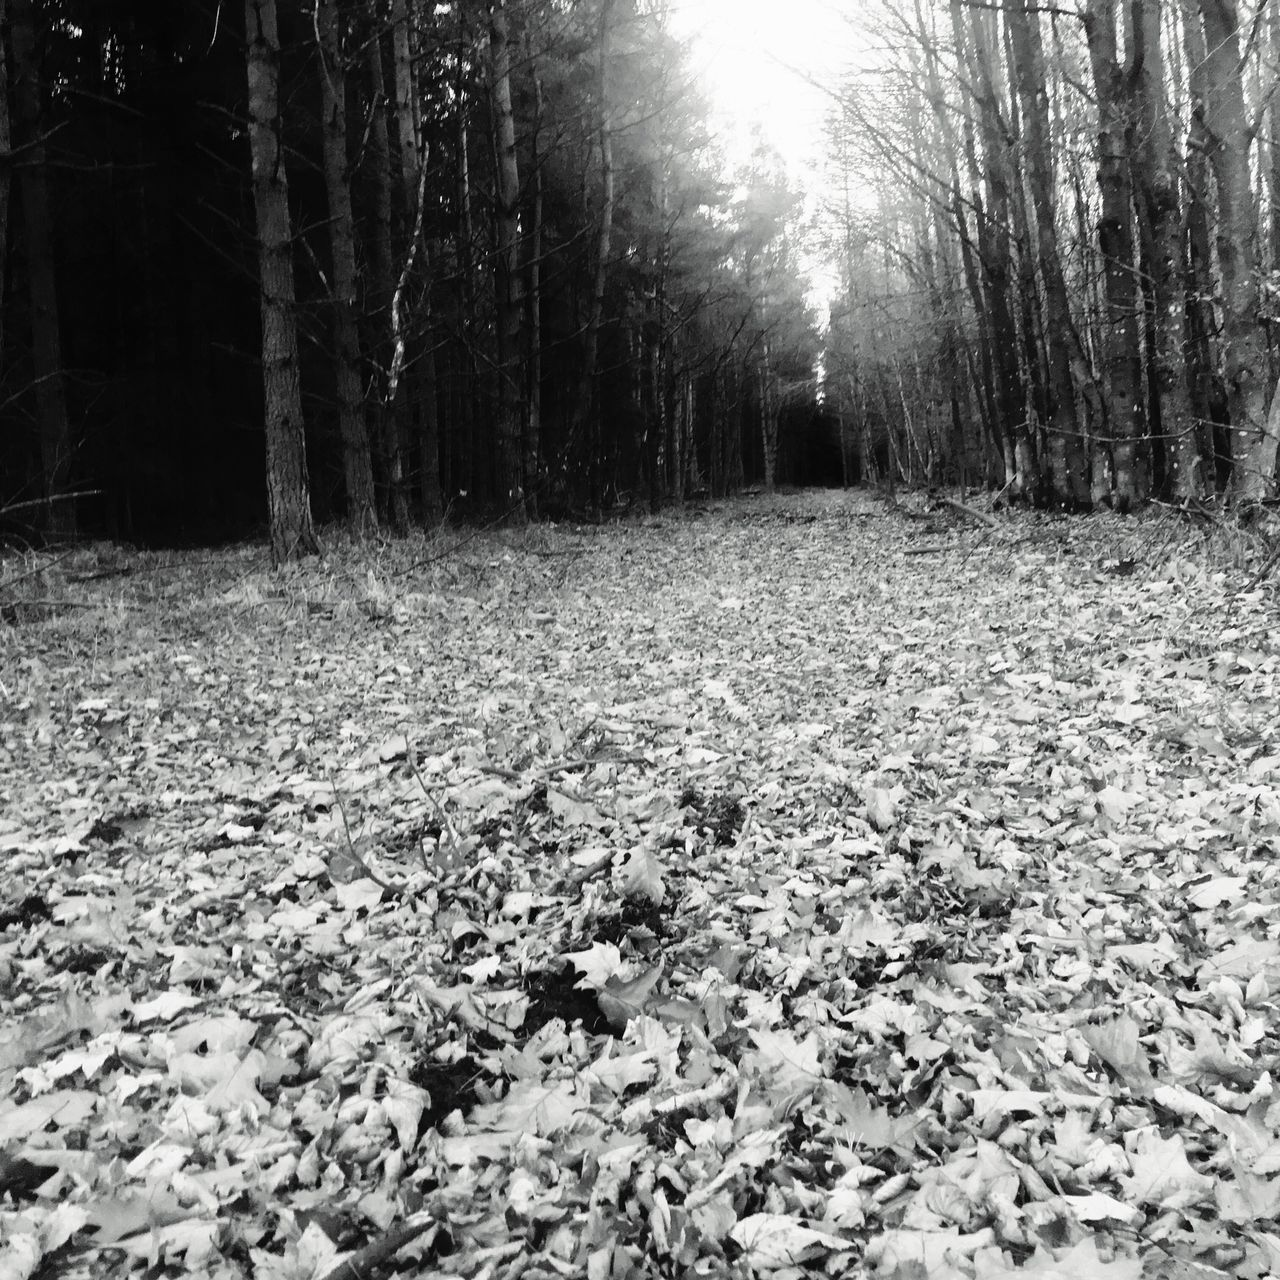 Forest walks 🌲🌳 Tree Nature Change Scenics Outdoors Autumn Sunlight No People Leaf Tranquility Tranquil Scene Day Bare Tree Beauty In Nature Photography EyeEm Best Shots Scotland Scotland 💕 Eye4photography  Blackandwhite Forest Path Walking Around